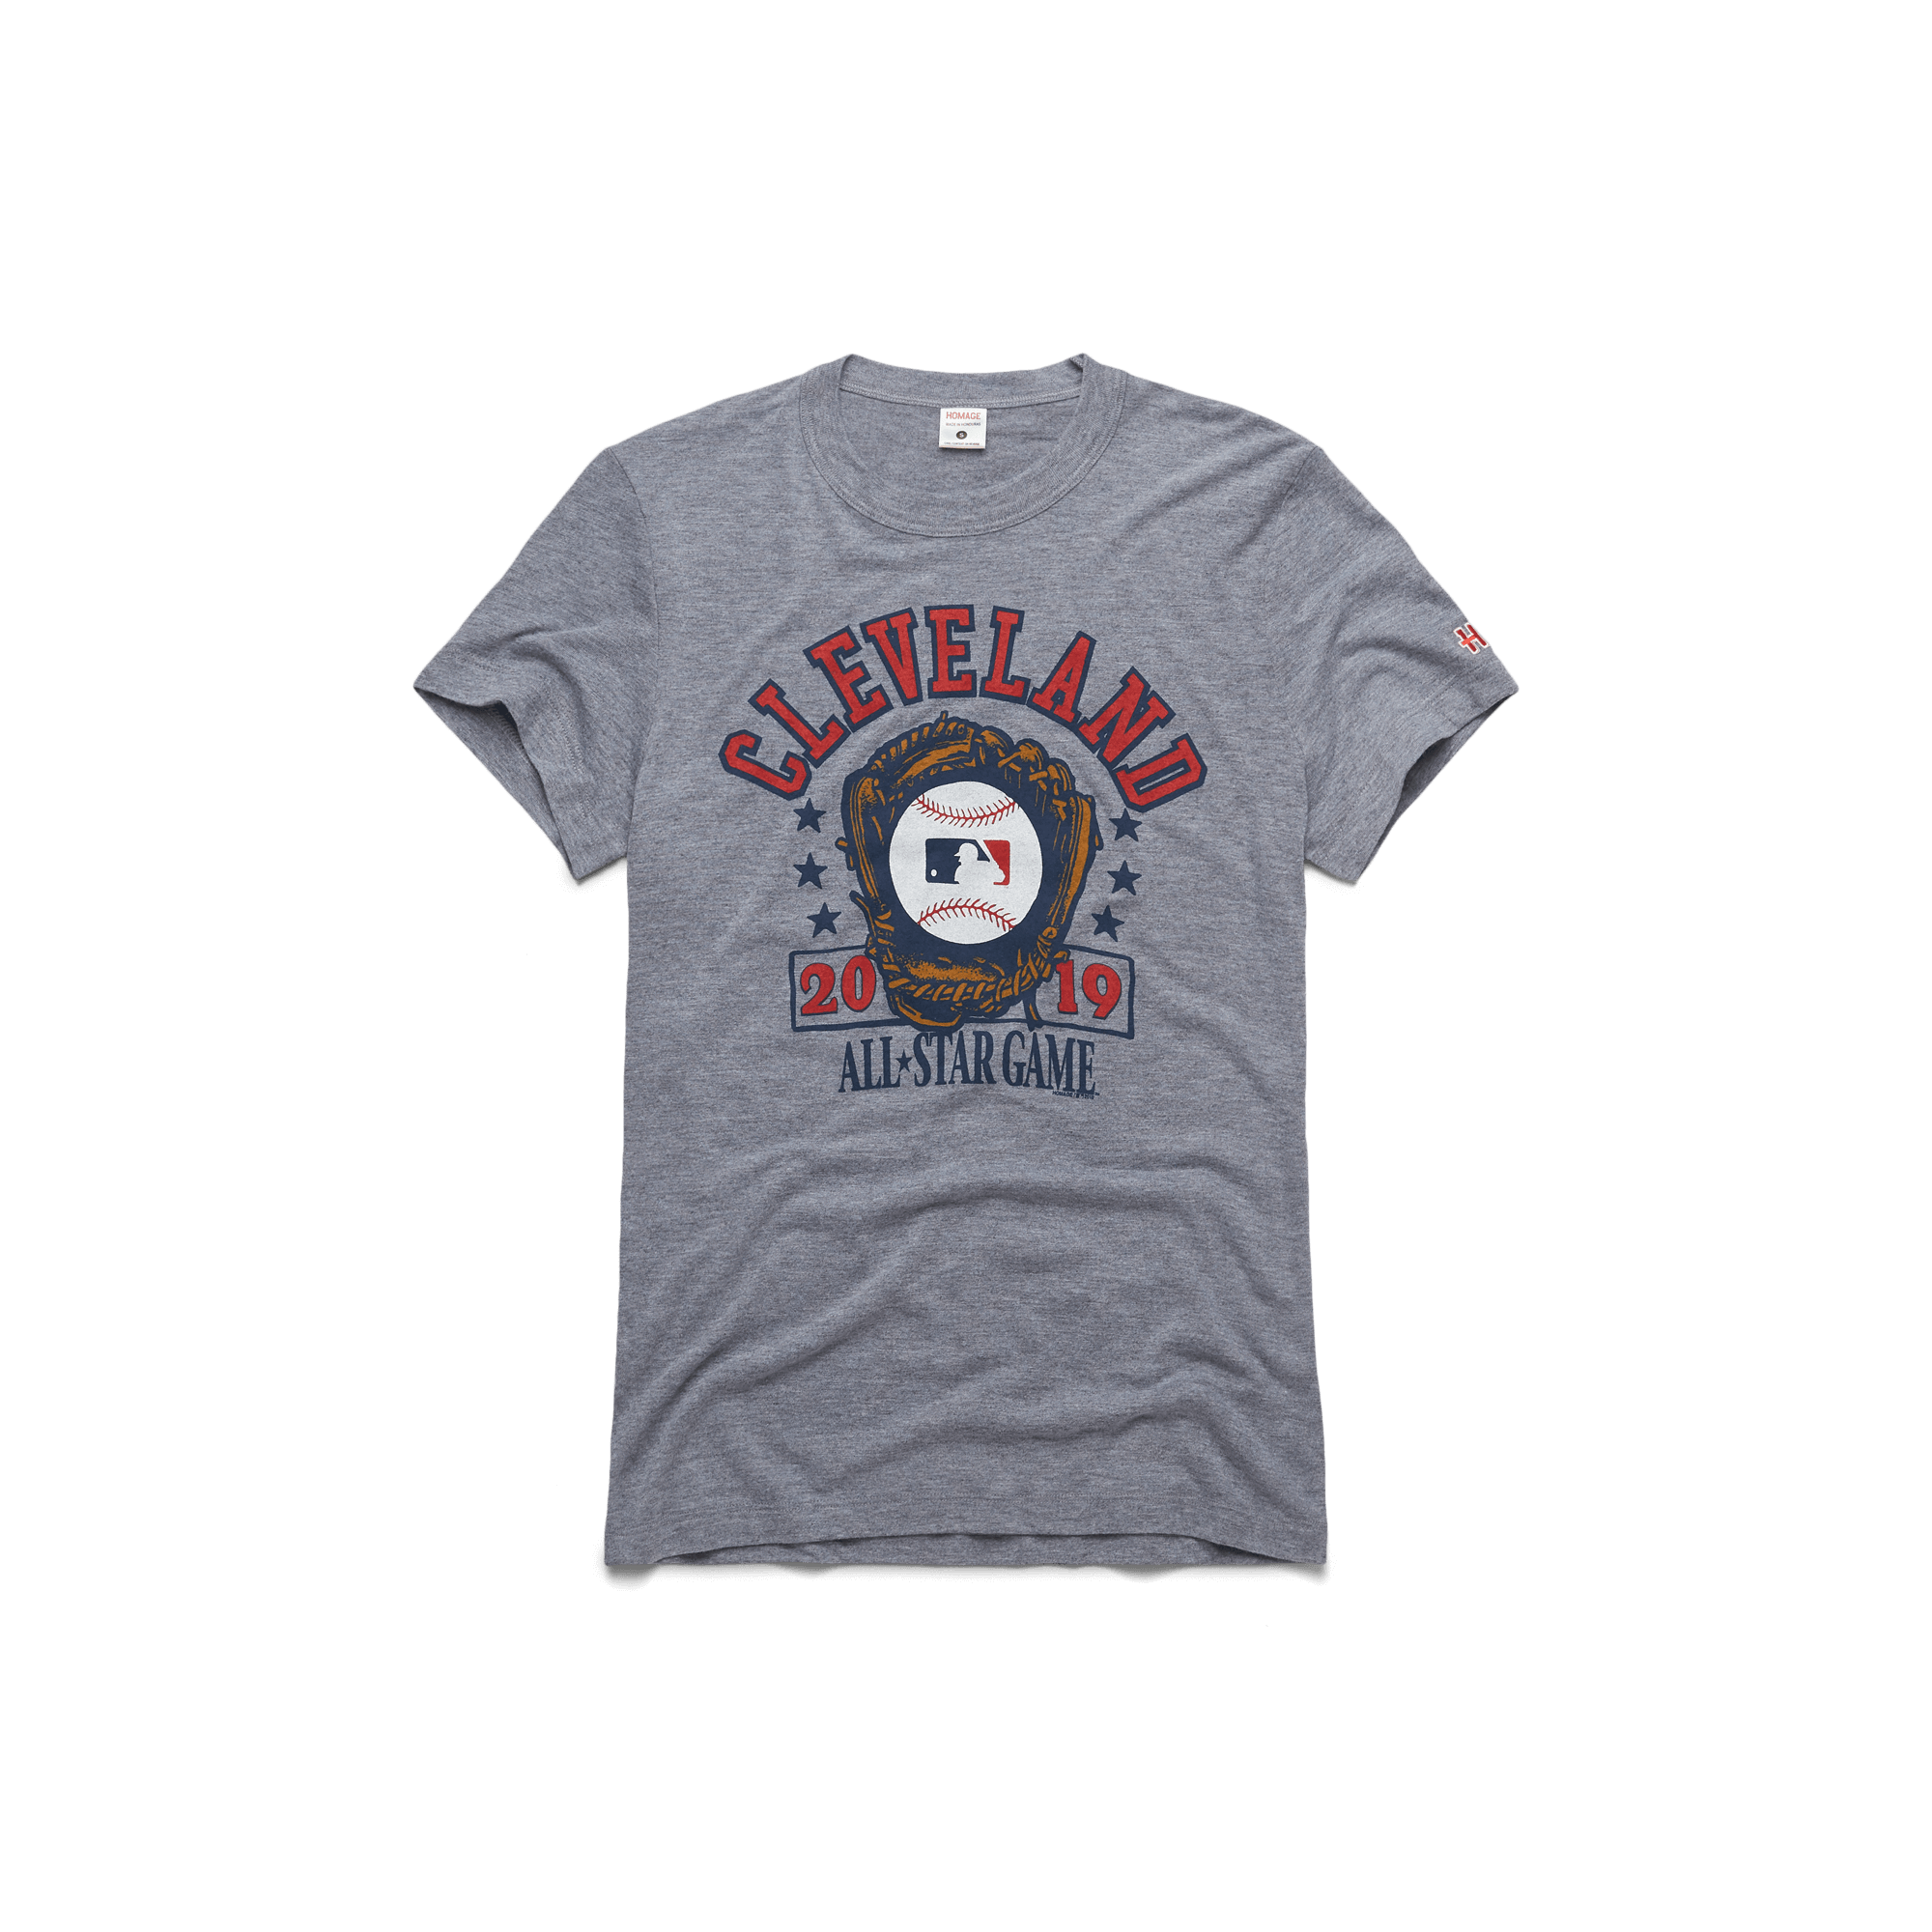 f099f883a179 Retro Cleveland Ohio Vintage Inspired Apparel – HOMAGE